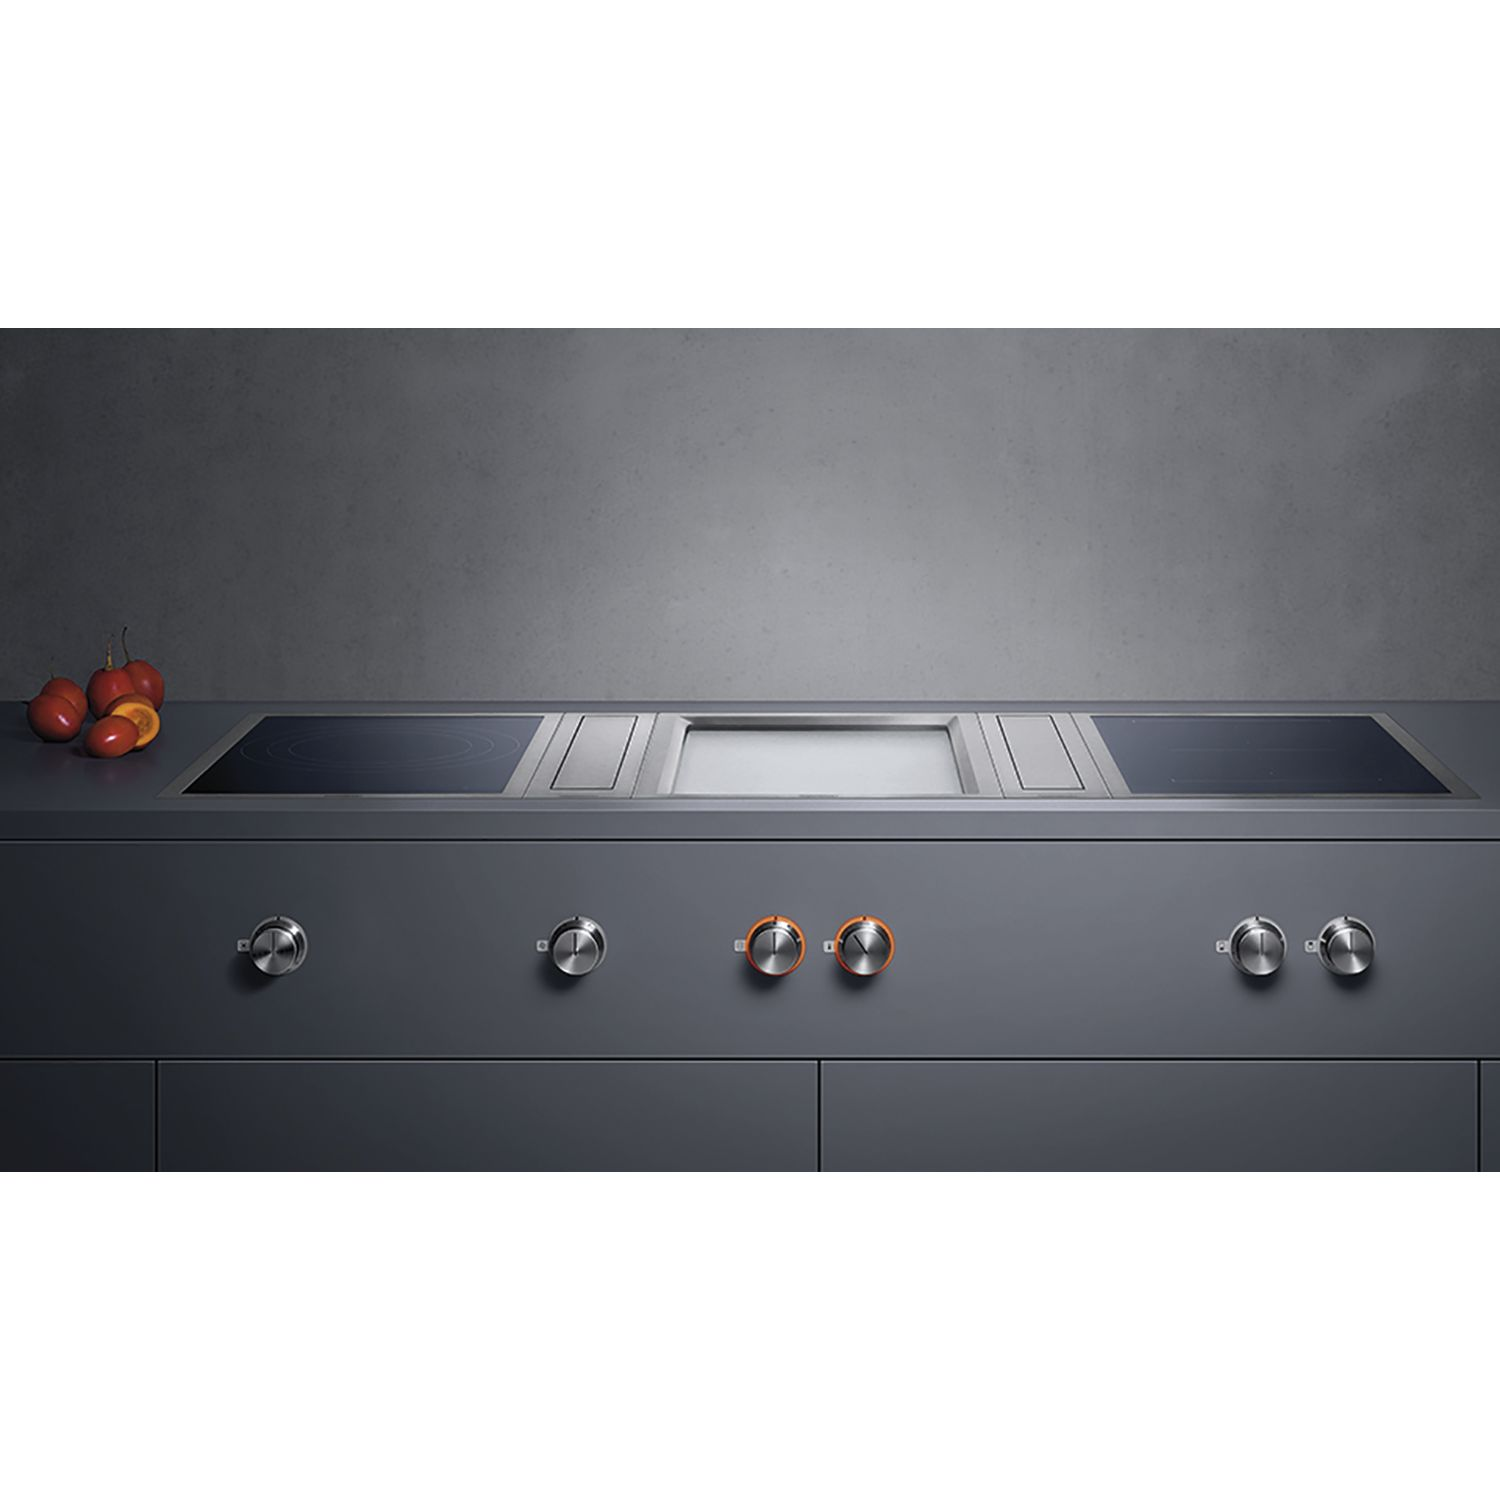 gaggenau teppan yaki kochstelle vp414110 edelstahl autark. Black Bedroom Furniture Sets. Home Design Ideas